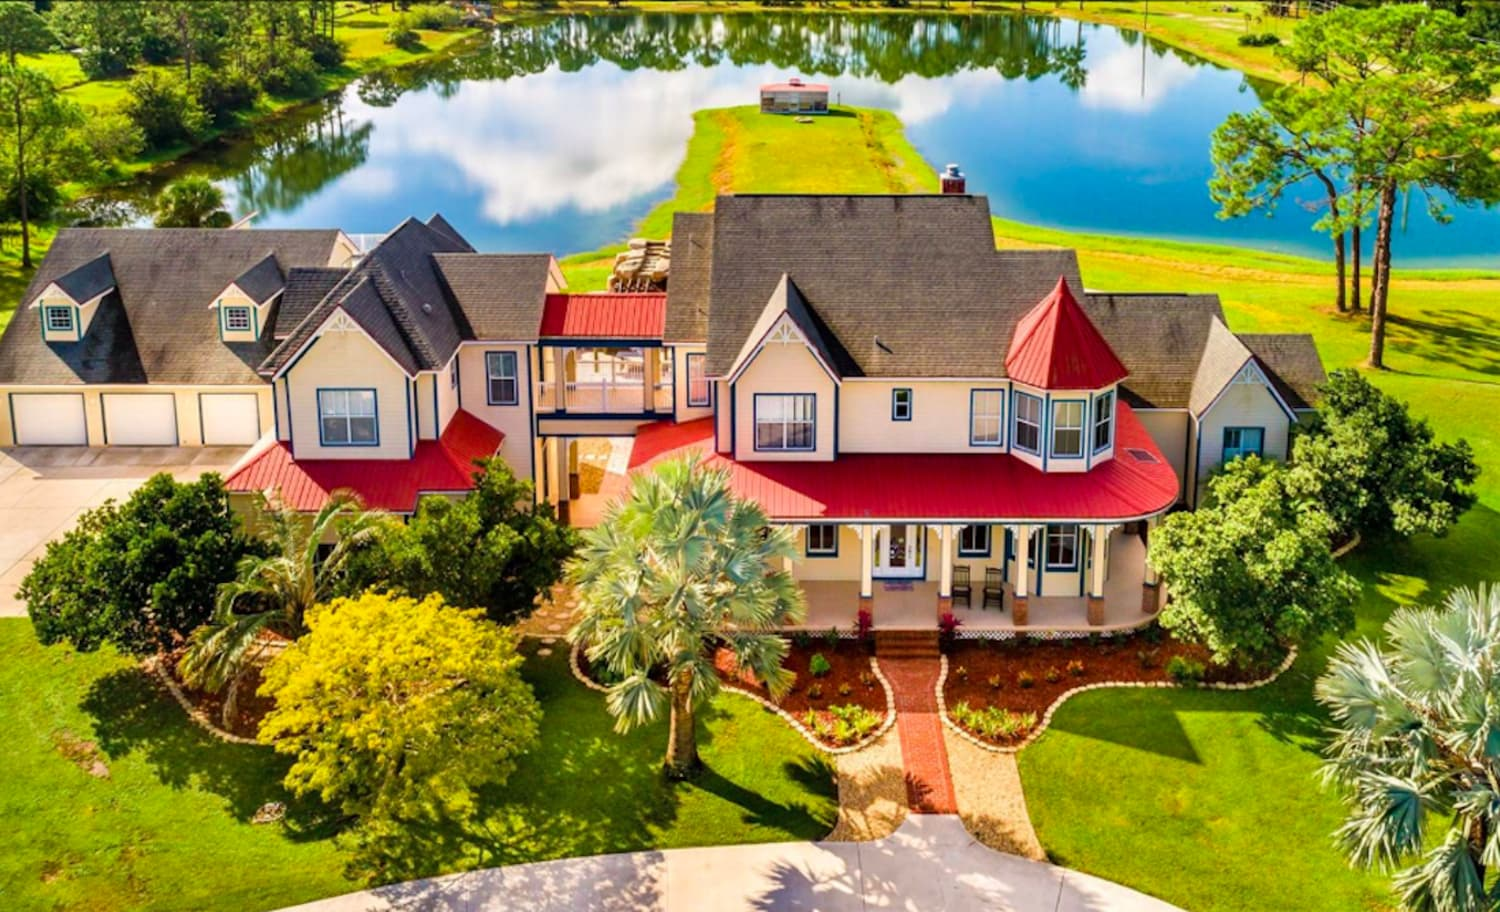 You Can Buy This Disney-Themed House with 2 Massive Mickey Mouse Pools for $850K